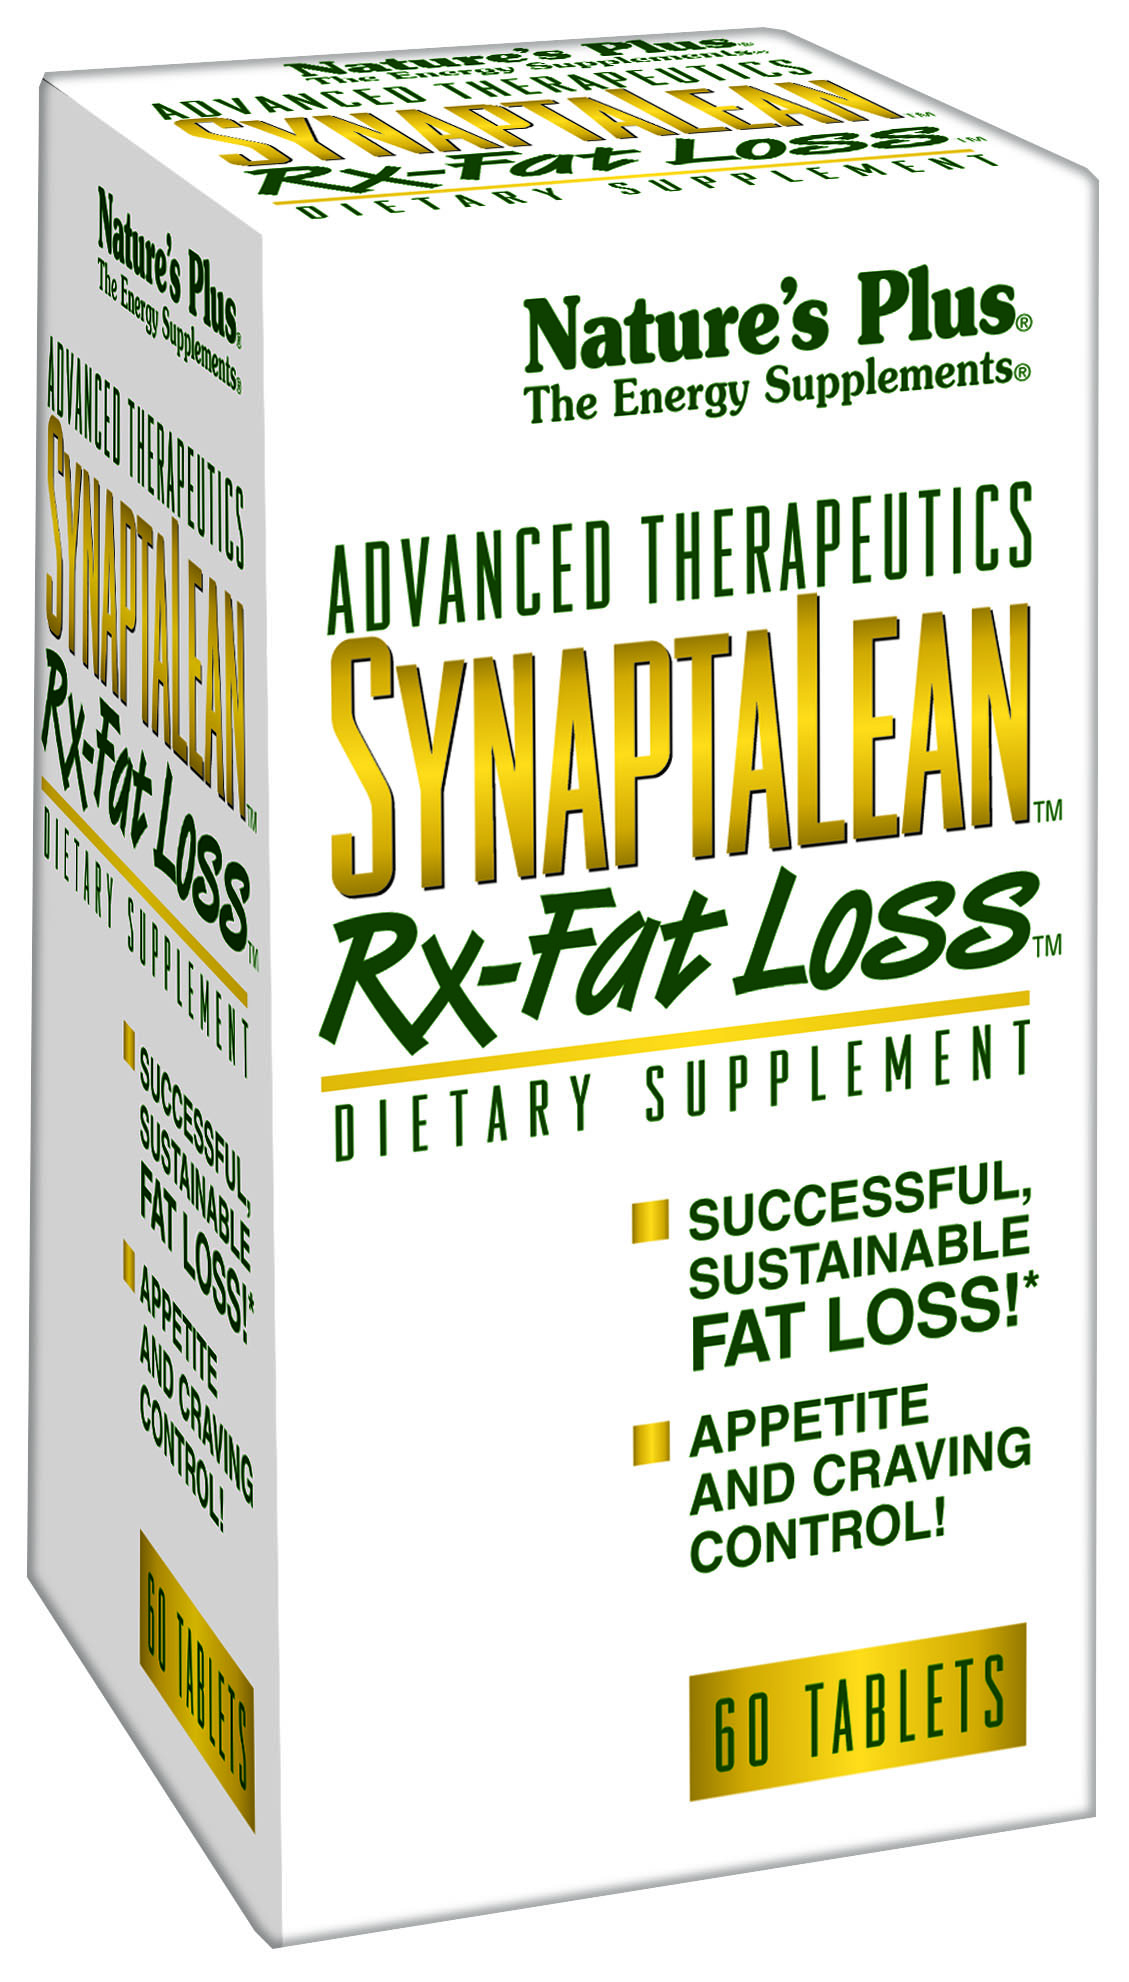 Nature's Plus Synaptalean Rx-fat loss 60tabs Φόρμουλα αδυνατίσματος